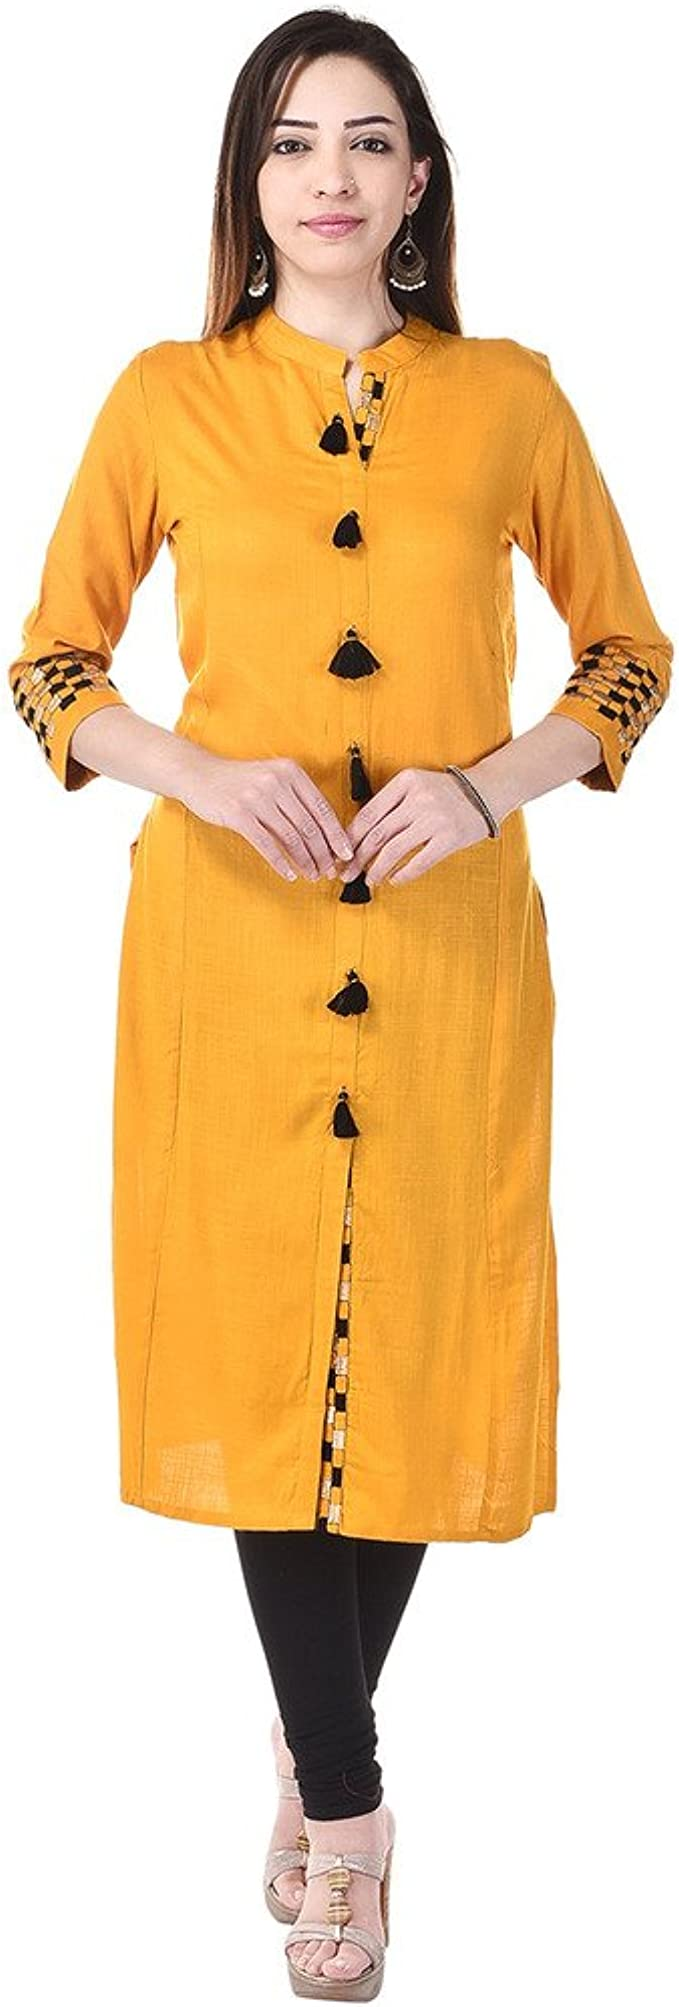 Vaachi women's printed semi anarkali regular fit cotton kurti pack of 1 (yellow) Women's Kurtas & Kurtis at amazon